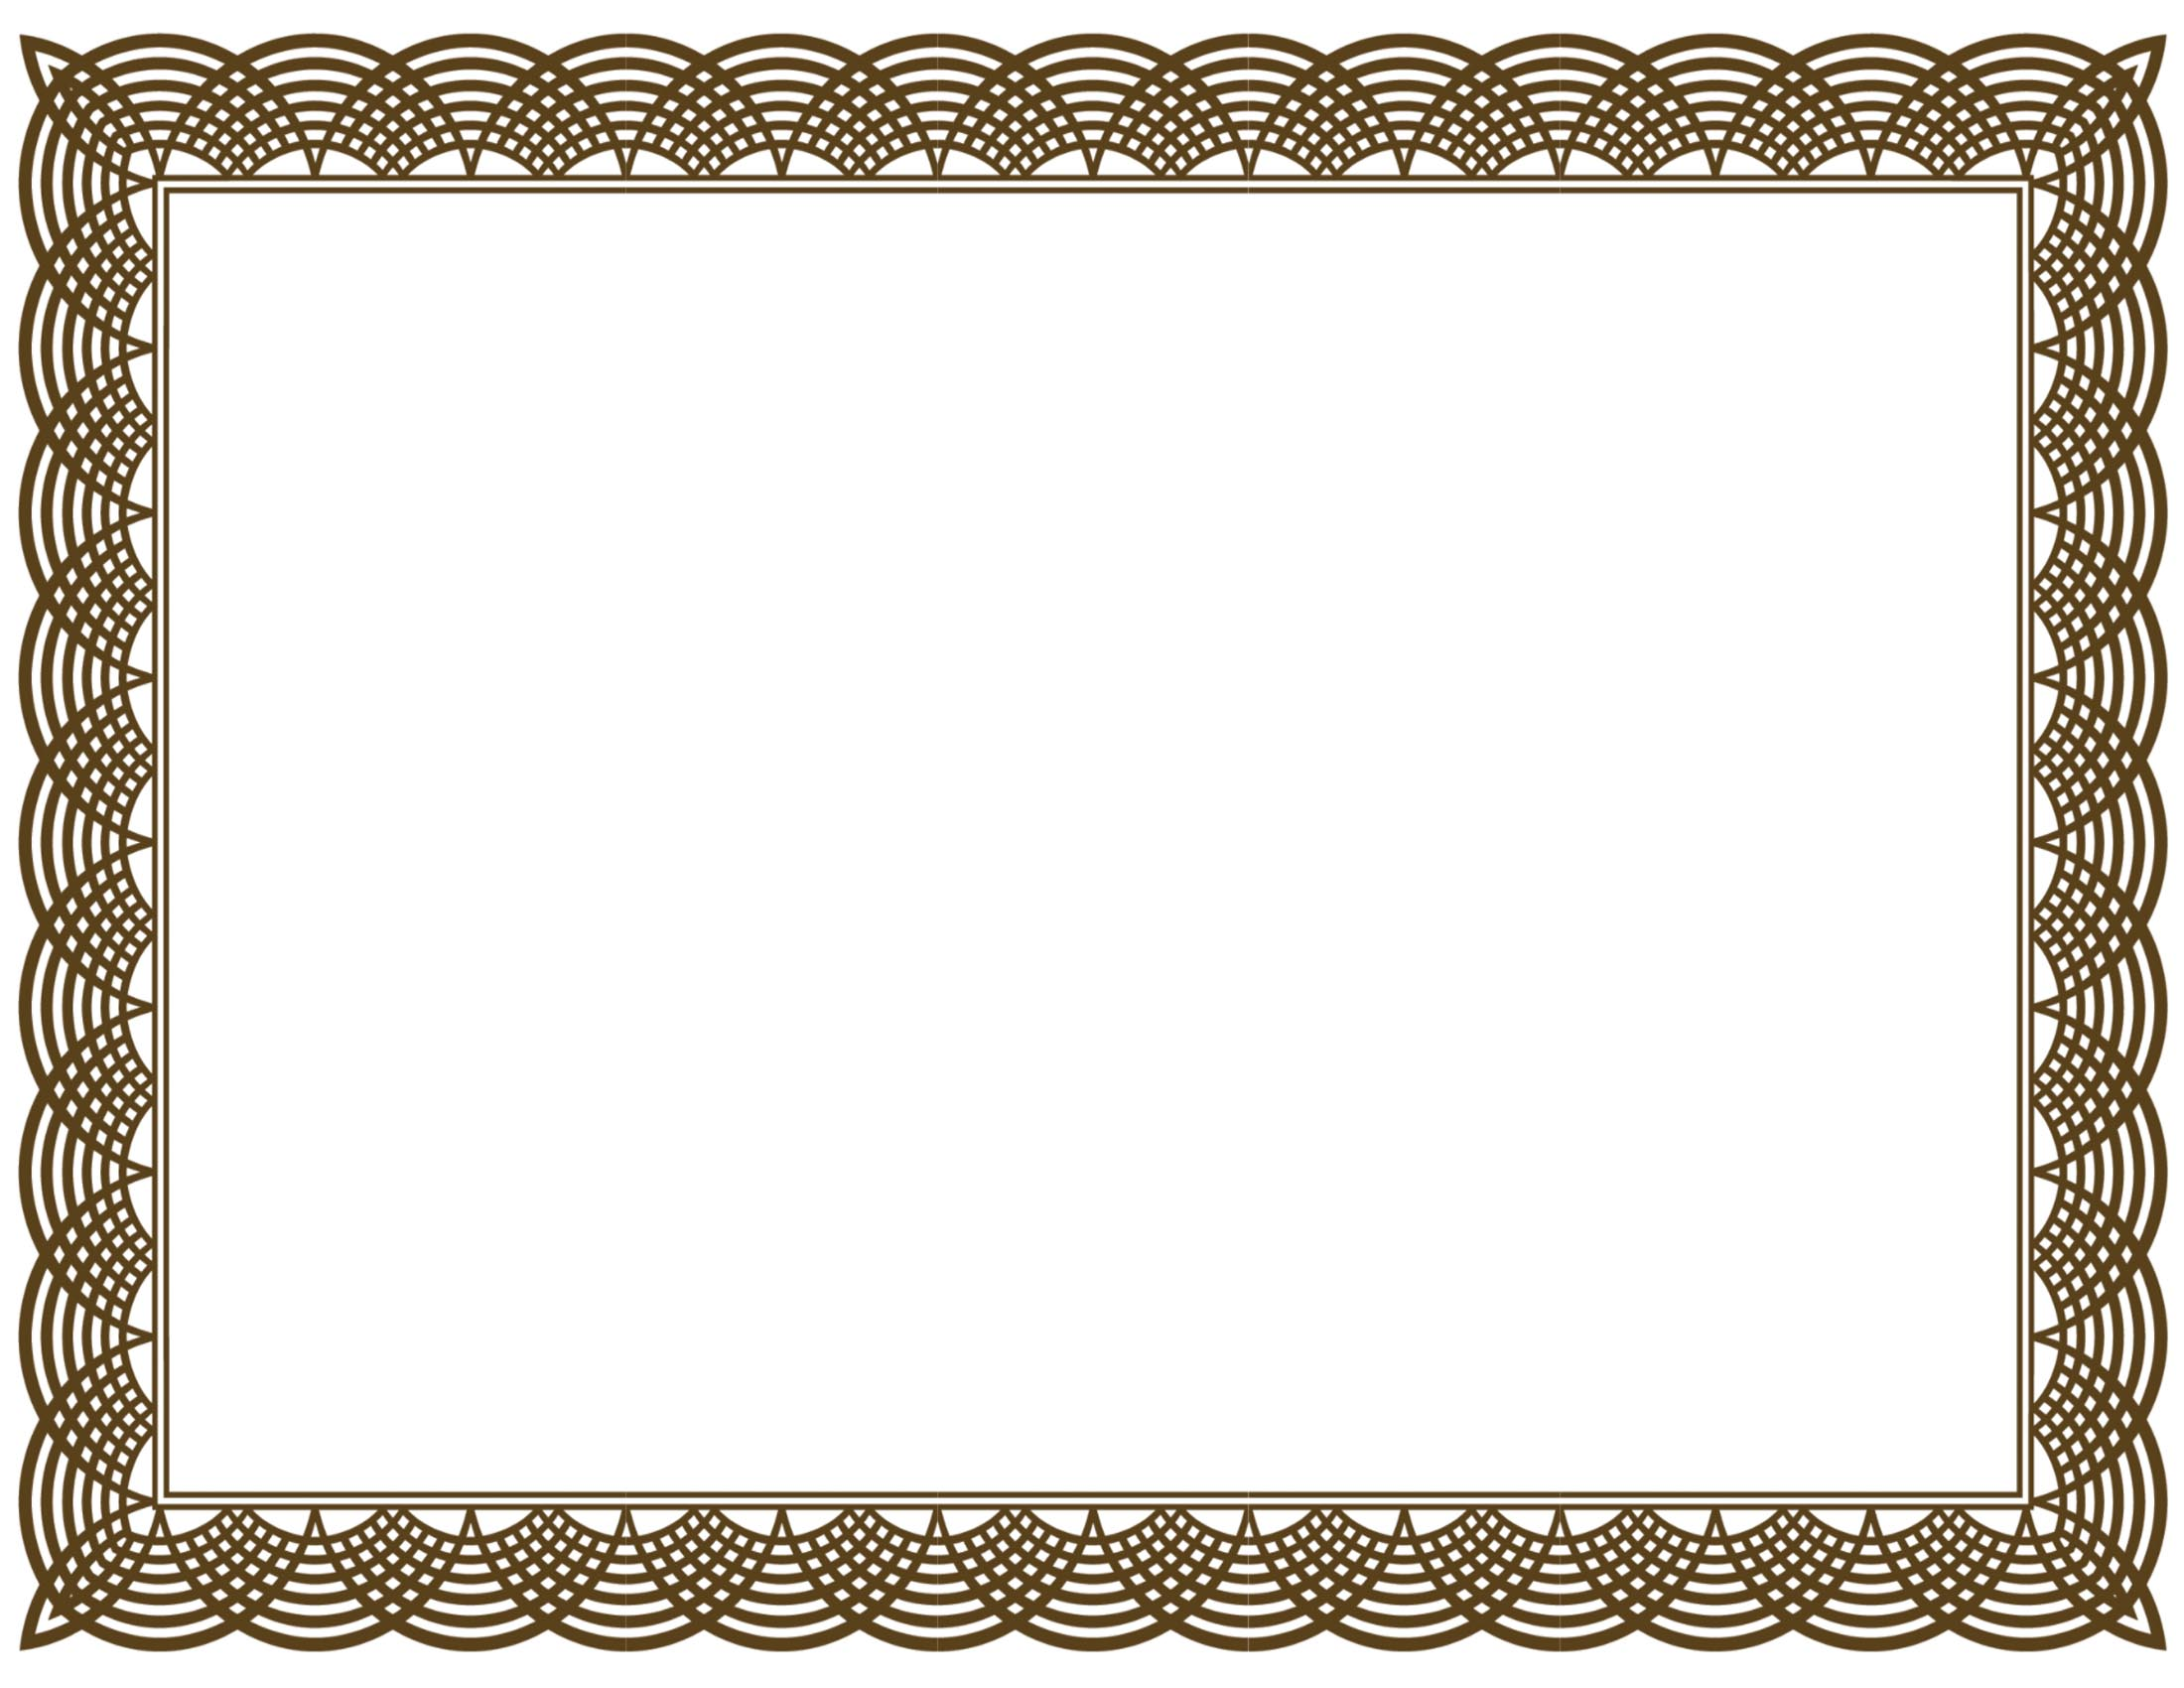 Certificate borders clipart png library stock Free Certificate Border, Download Free Clip Art, Free Clip Art on ... png library stock